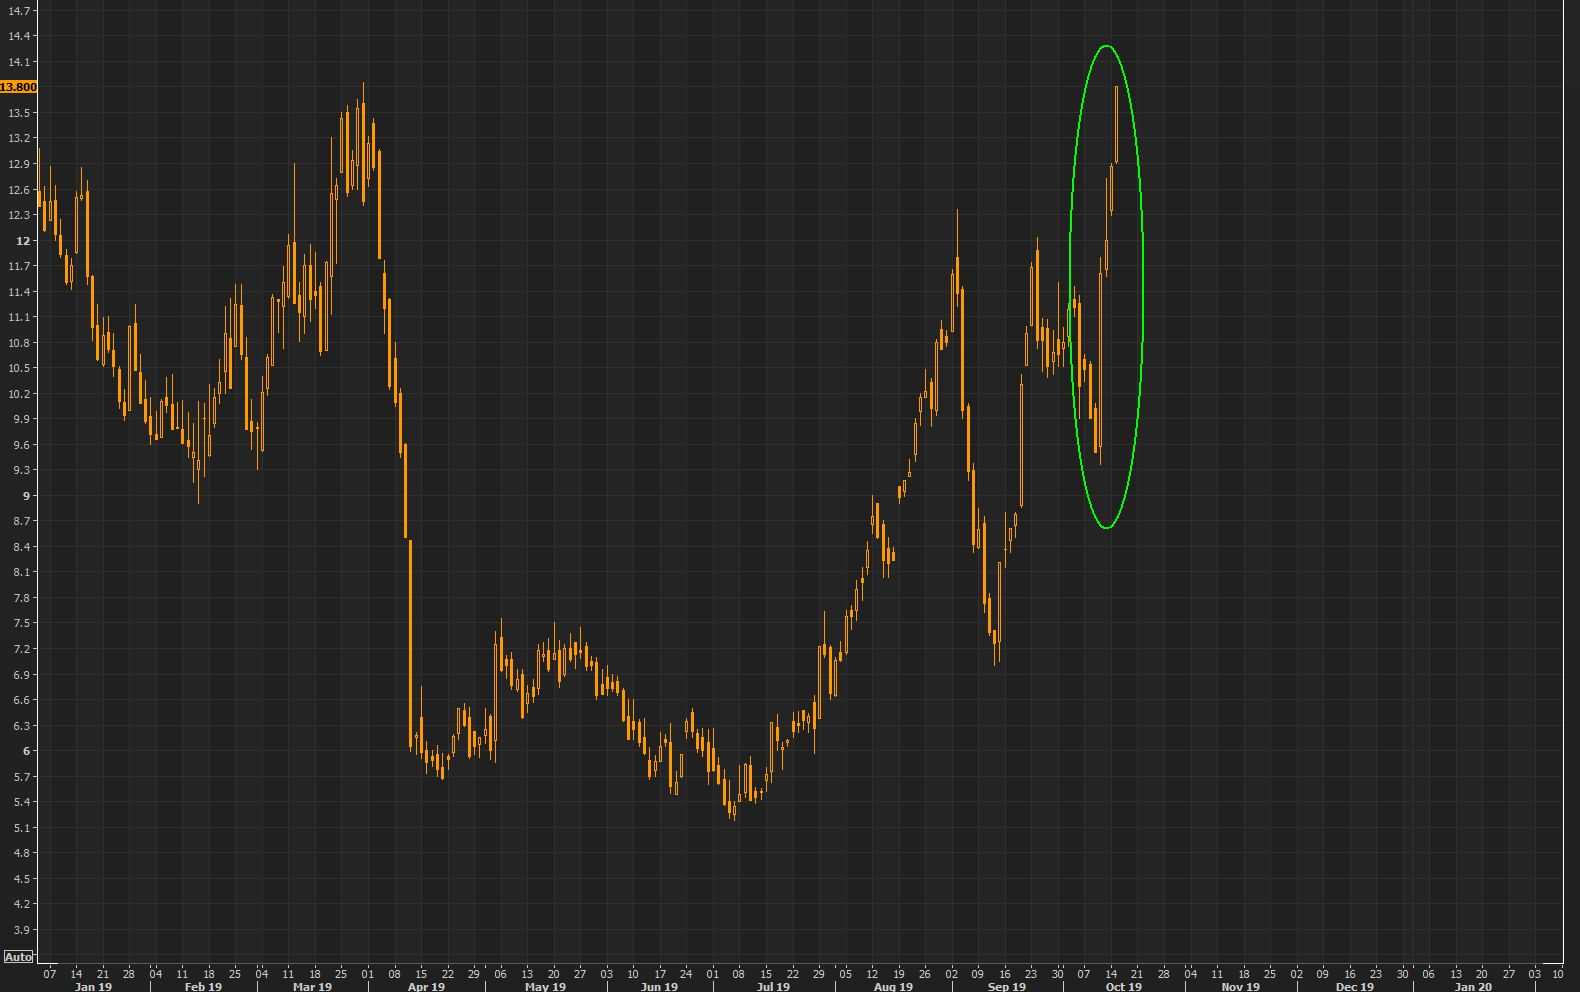 GBP 1 month volatility surging further